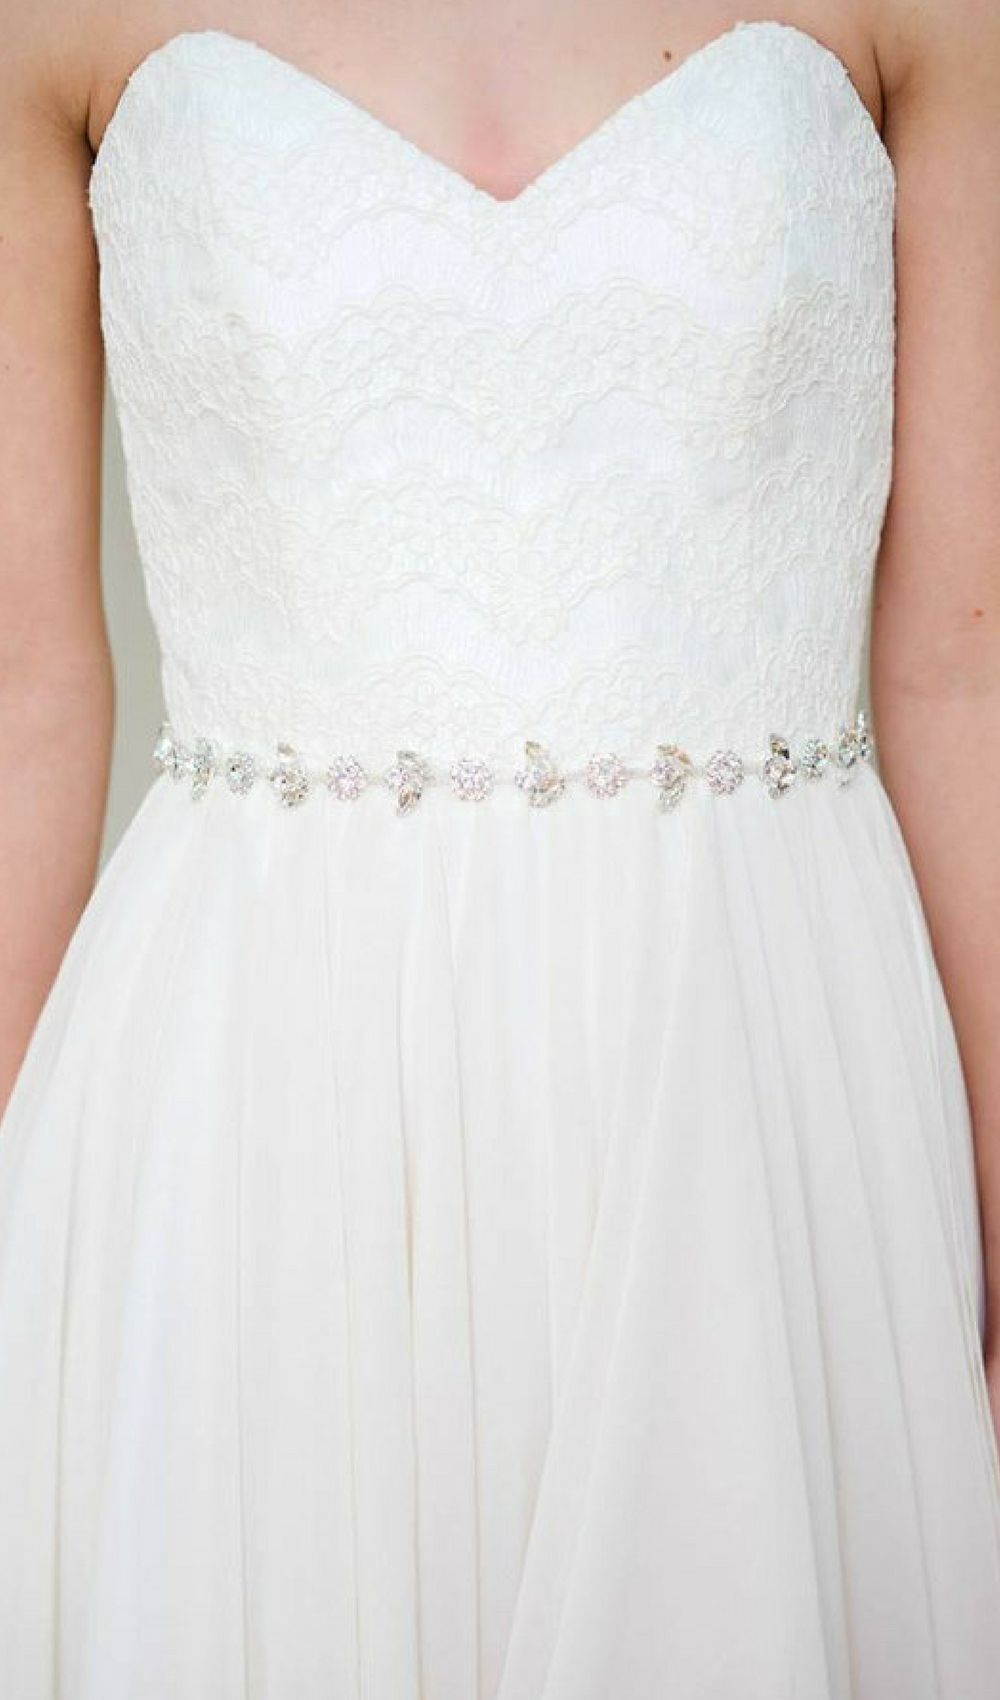 Wedding dresses with lots of rhinestones  Dahlia Belt A thin silver bridal sash punctuated with crystal